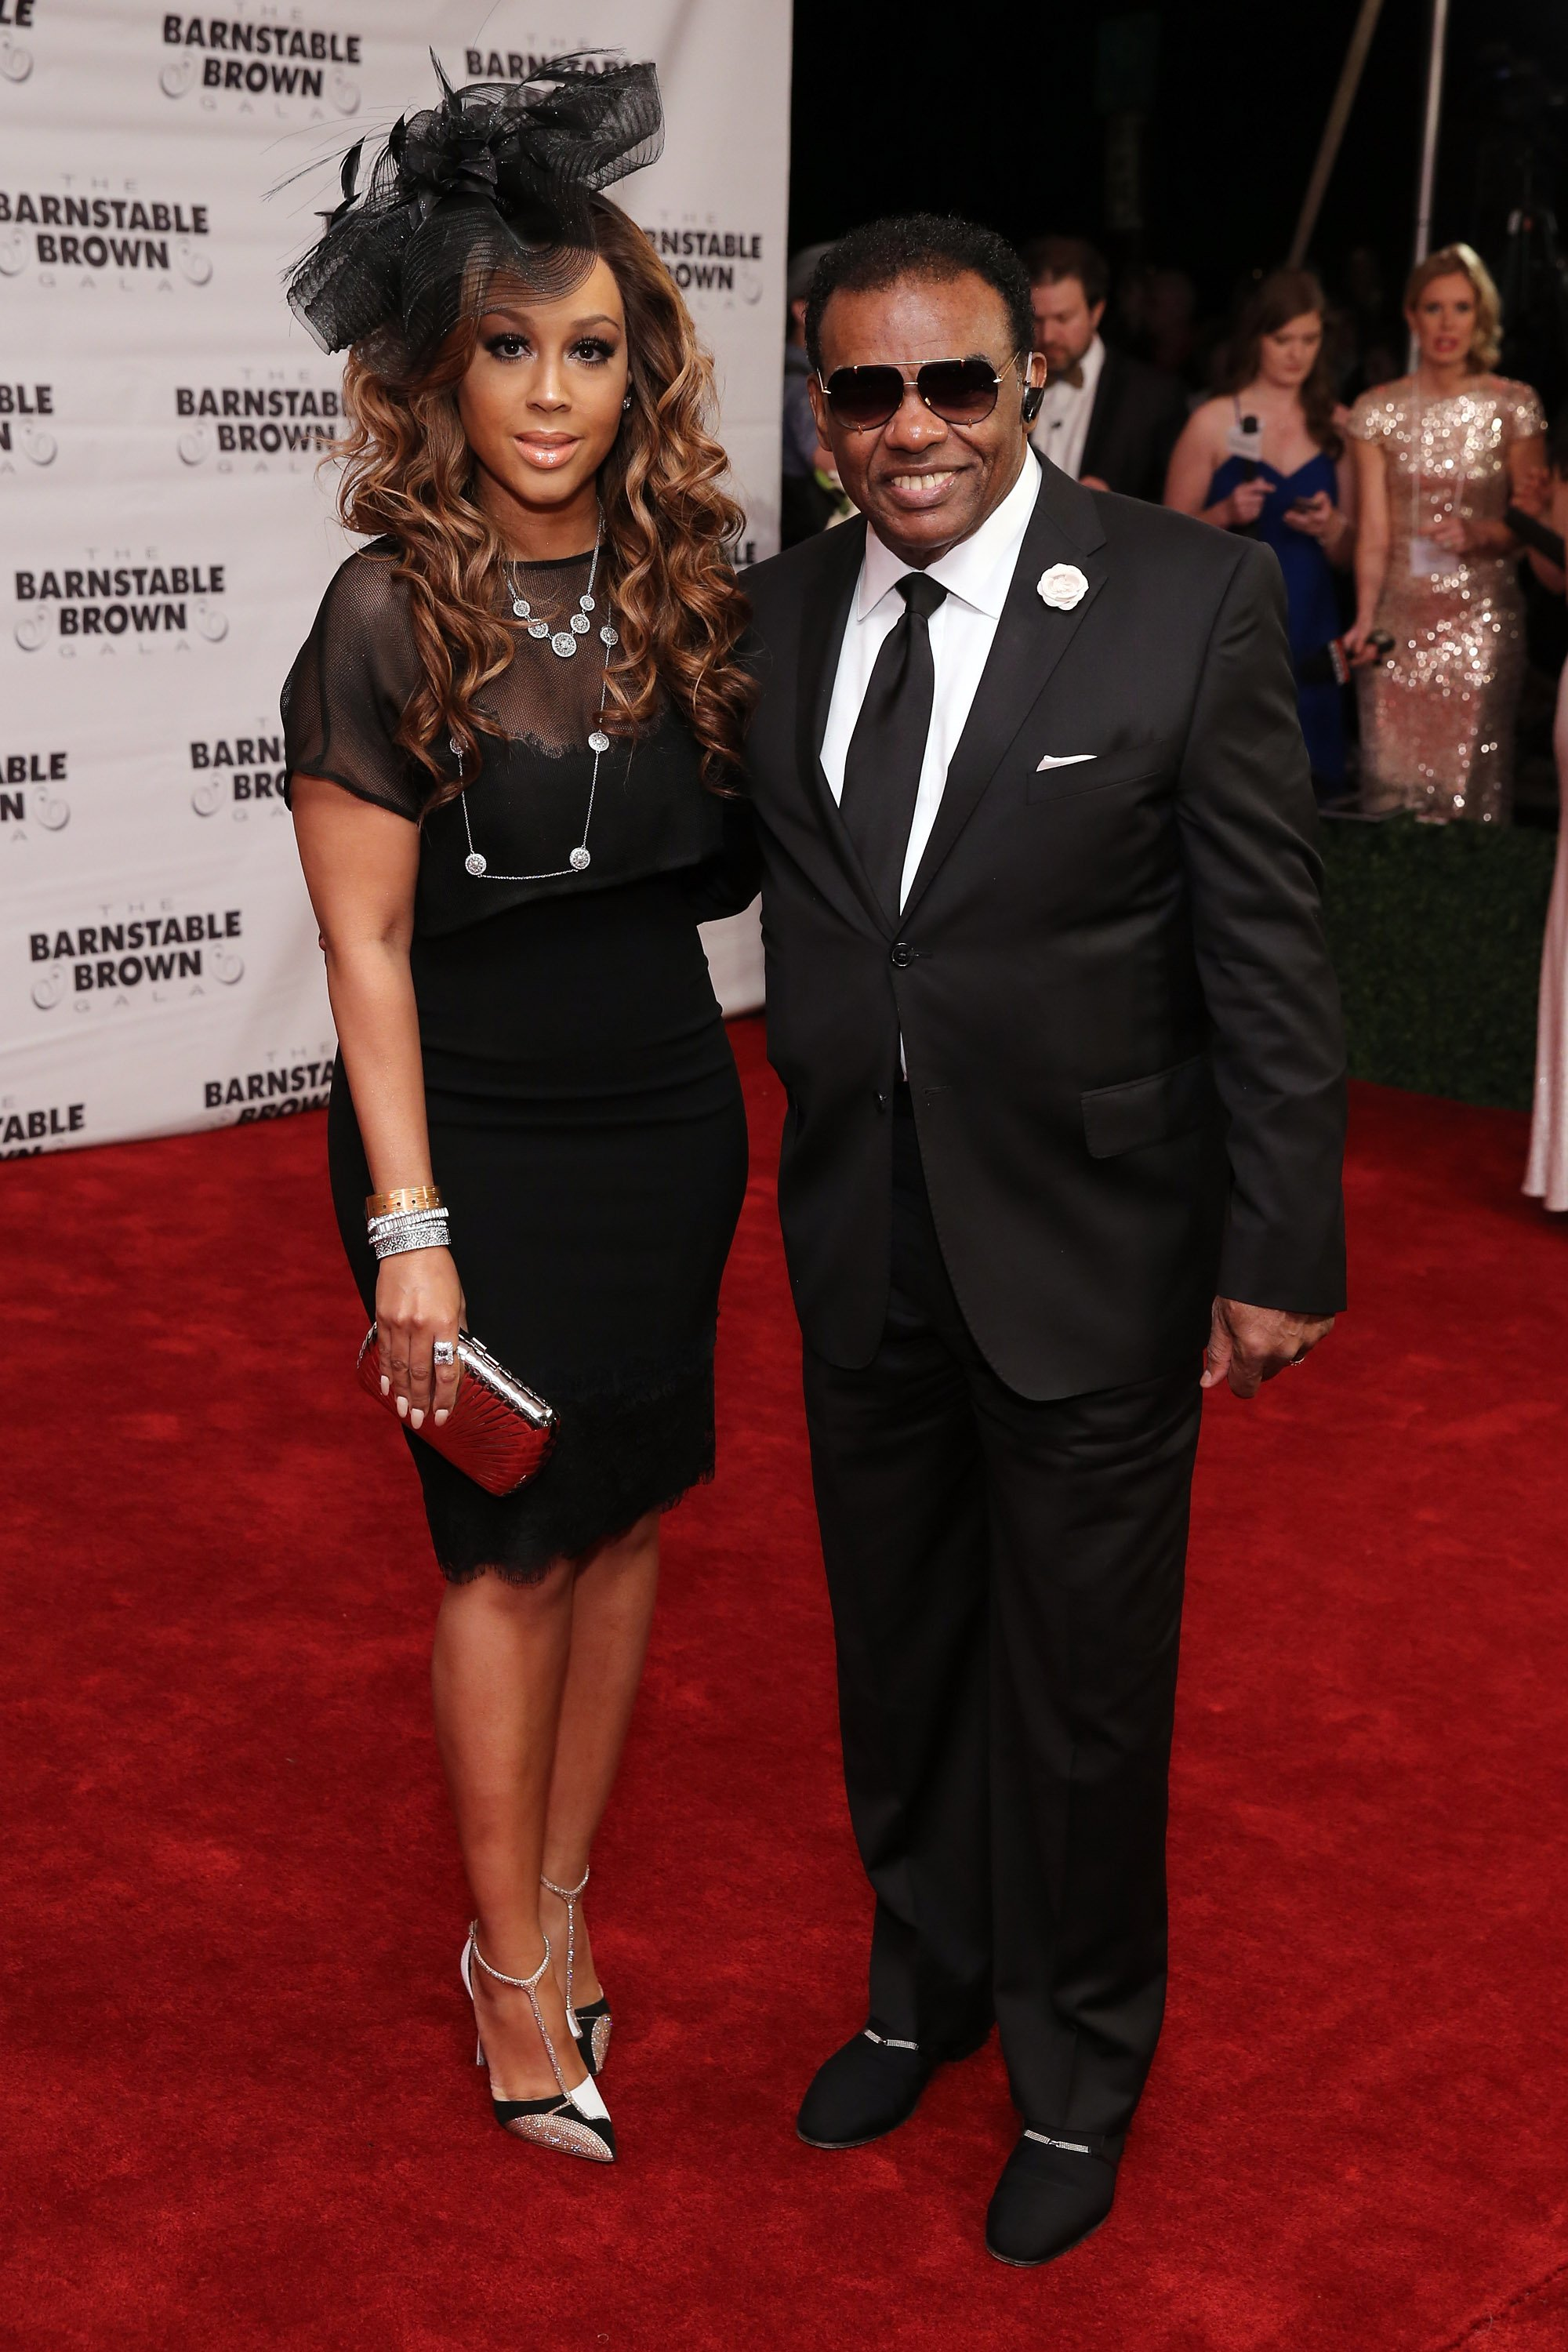 Ron Isley and Kandy Johnson on May 1, 2015 in Louisville, Kentucky | Source: Getty Images